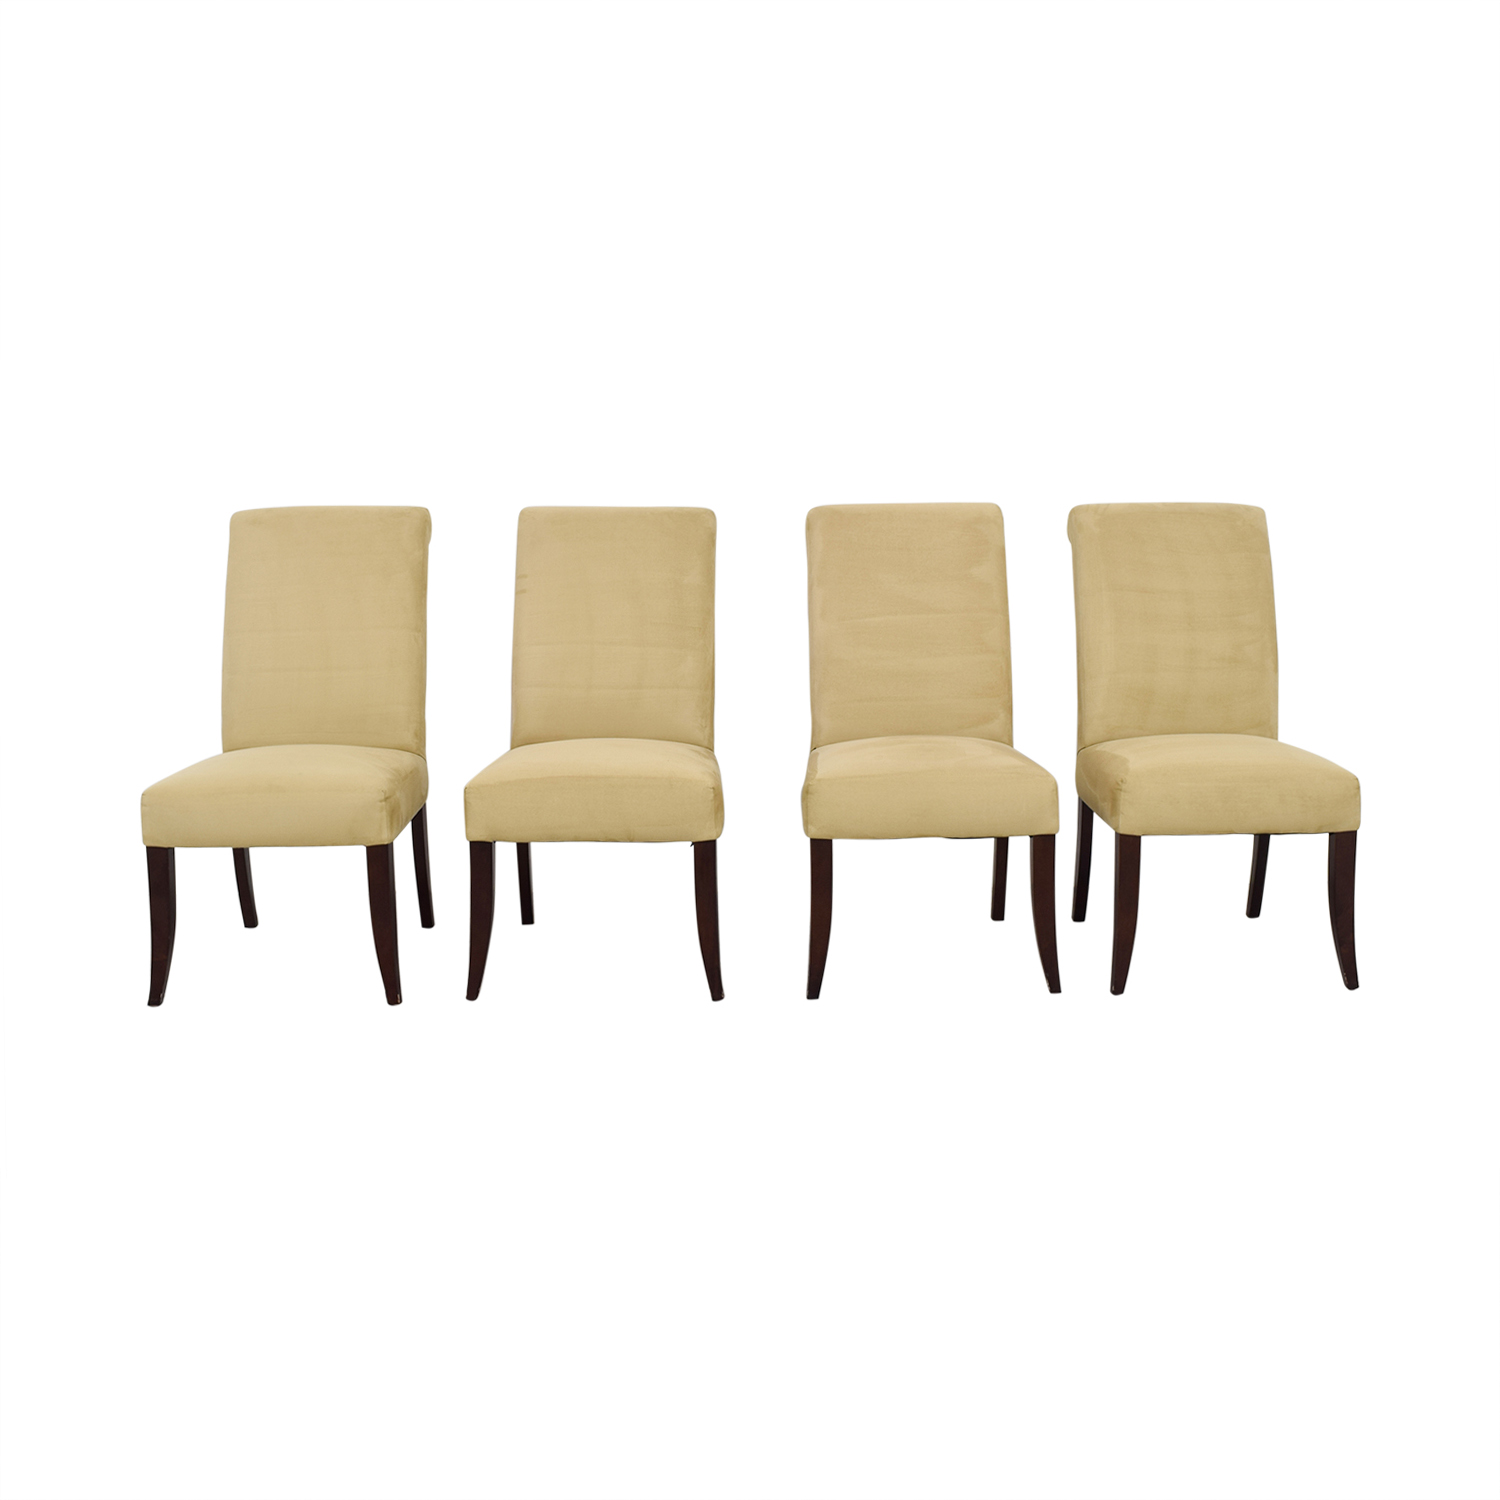 buy Pottery Barn Pottery Barn Beige Upholstered Dining Chairs online